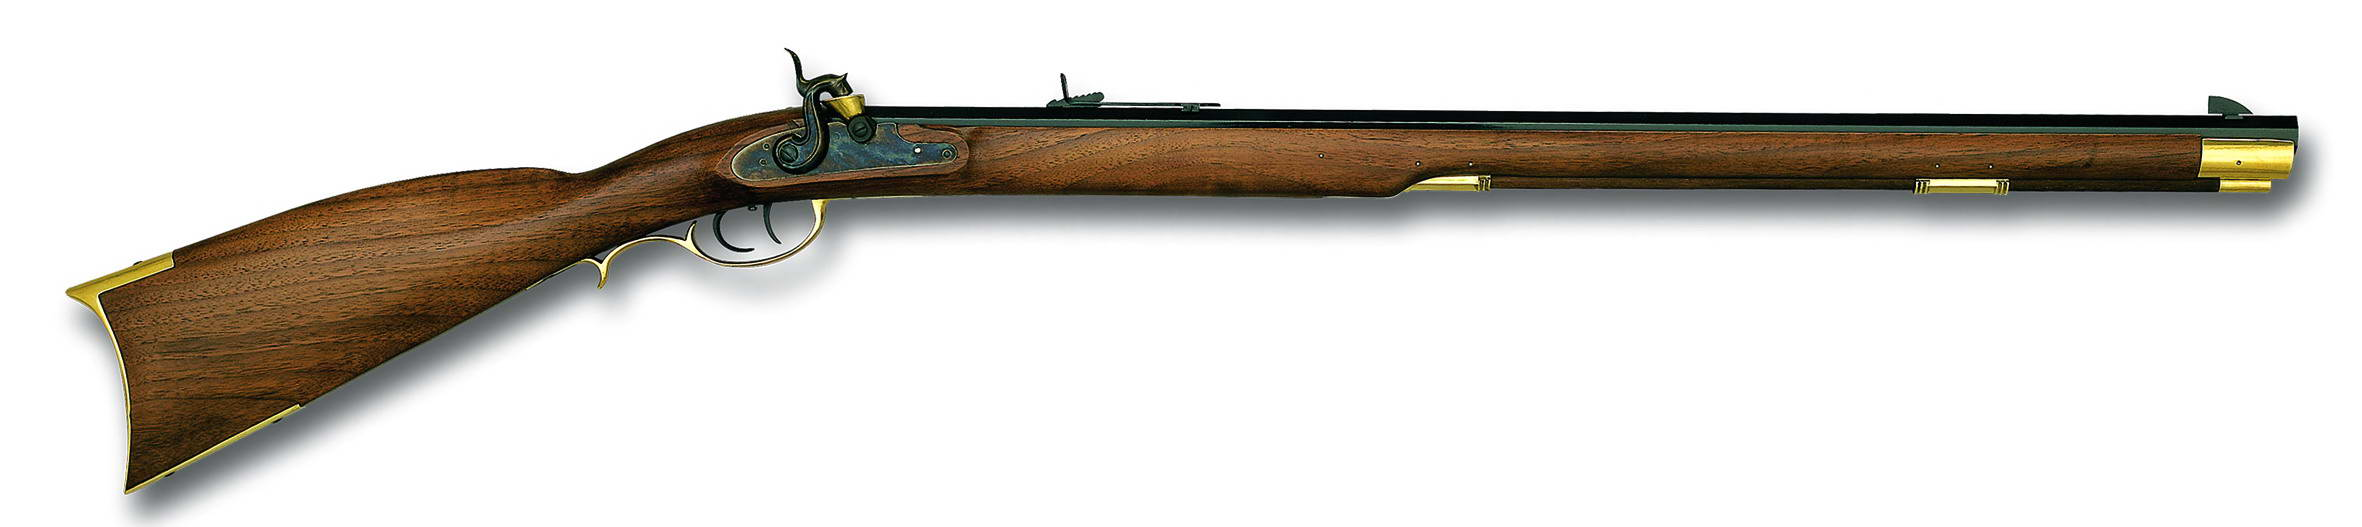 SURVIVAL IN THE BACKWOODS: THE PENNSYLVANIA-KENTUCKY RIFLE ...